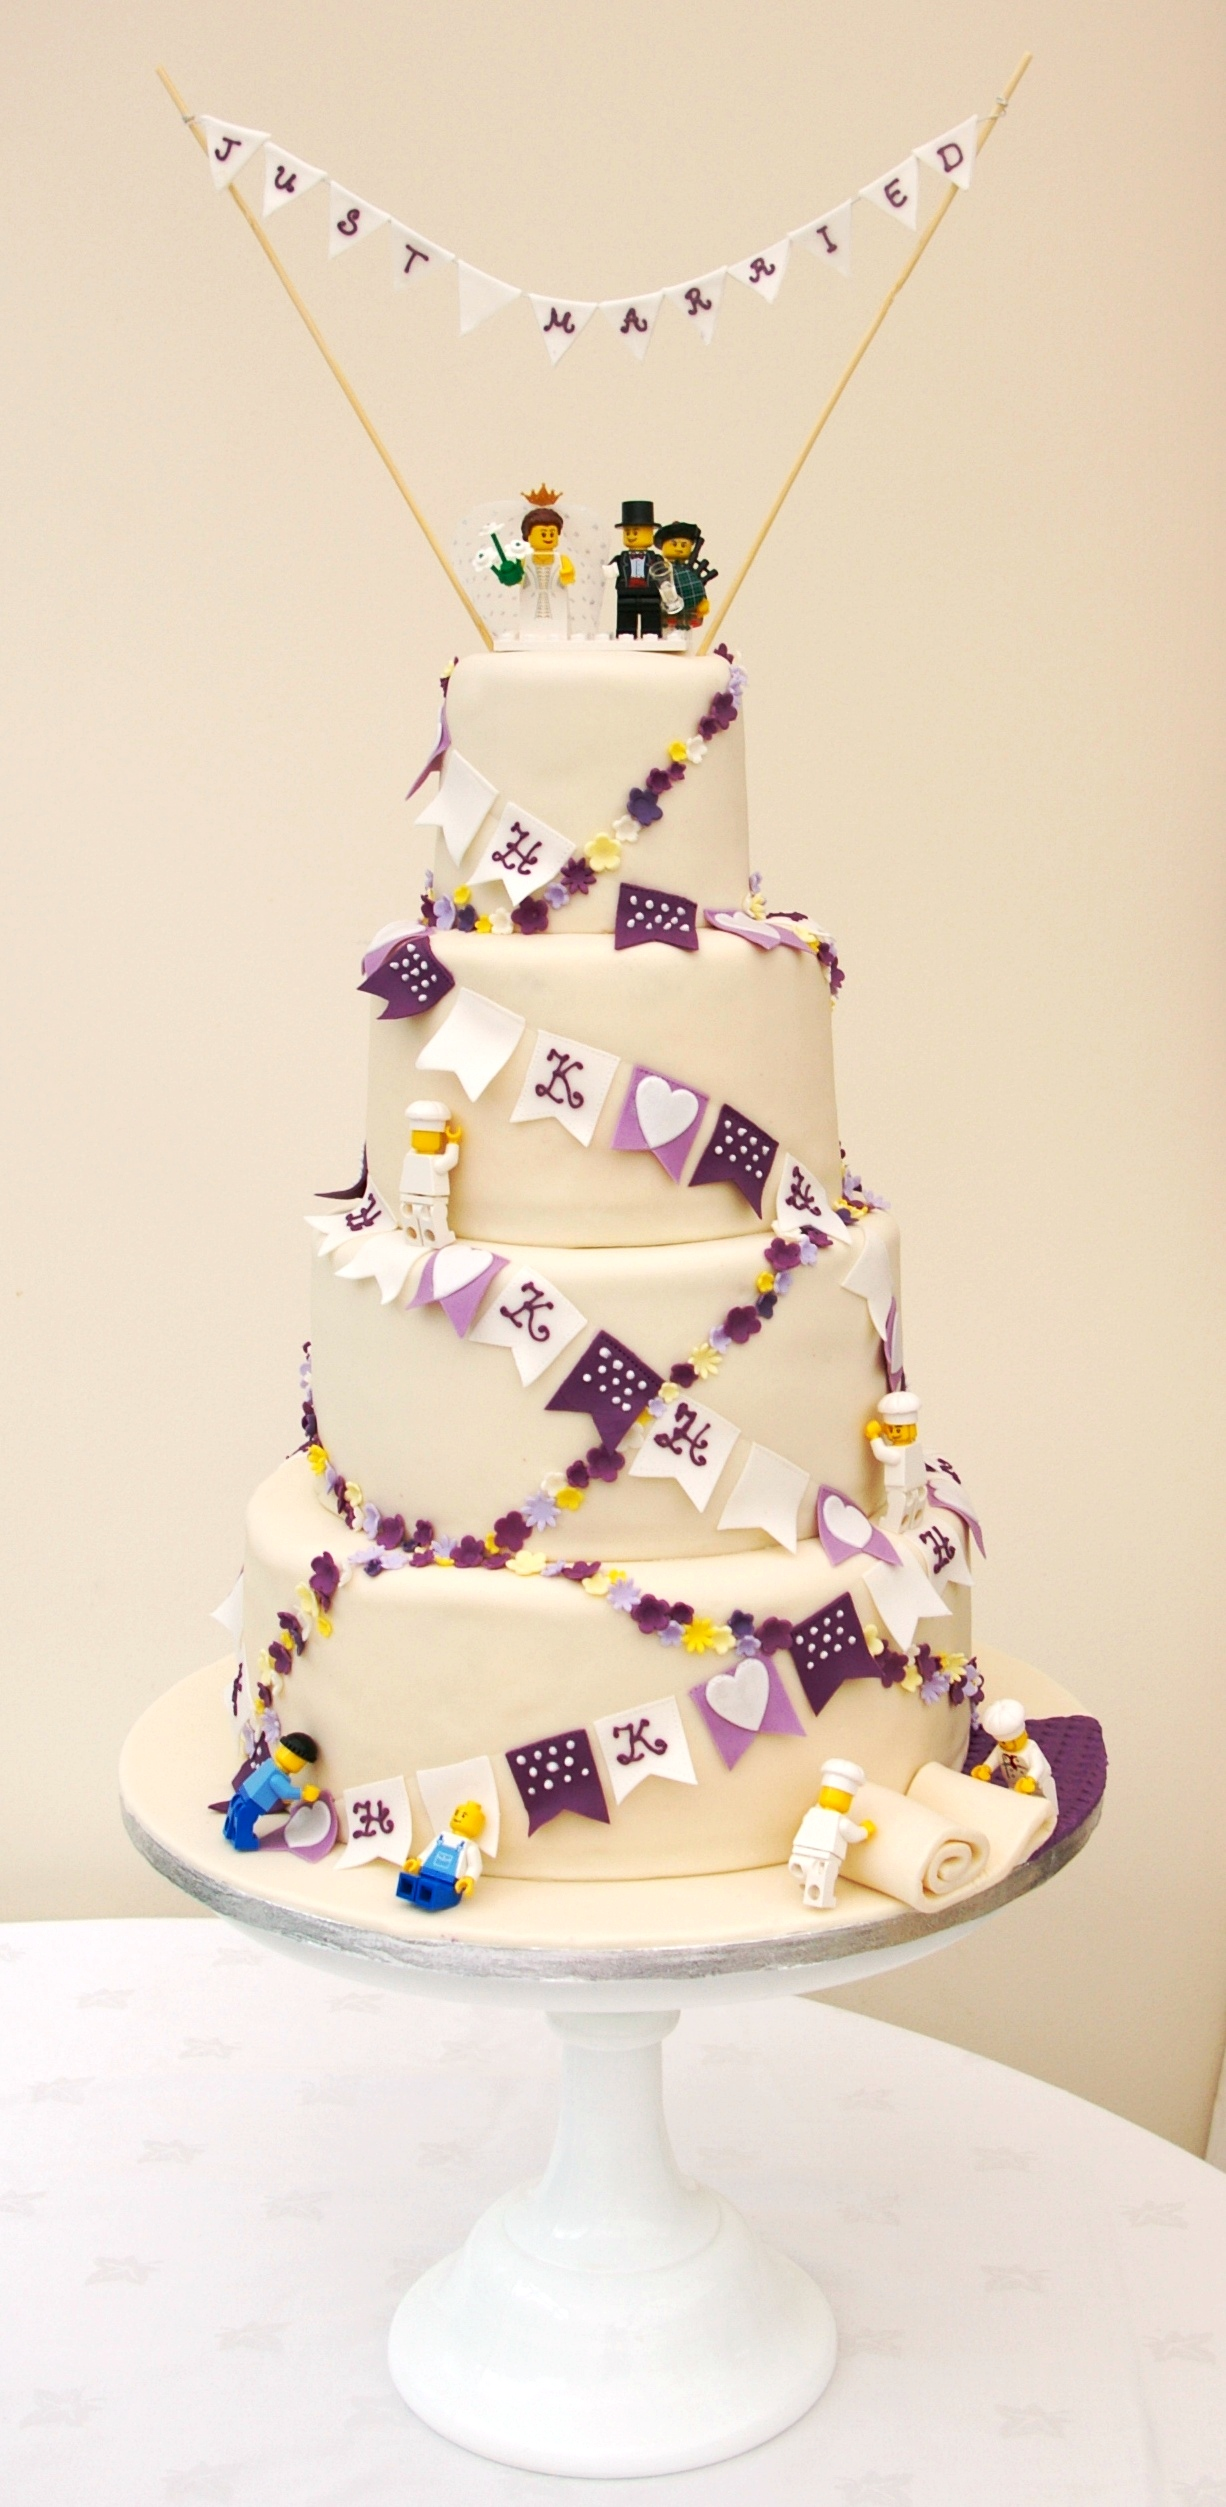 lego-bunting-and-flower-chains-cake-009